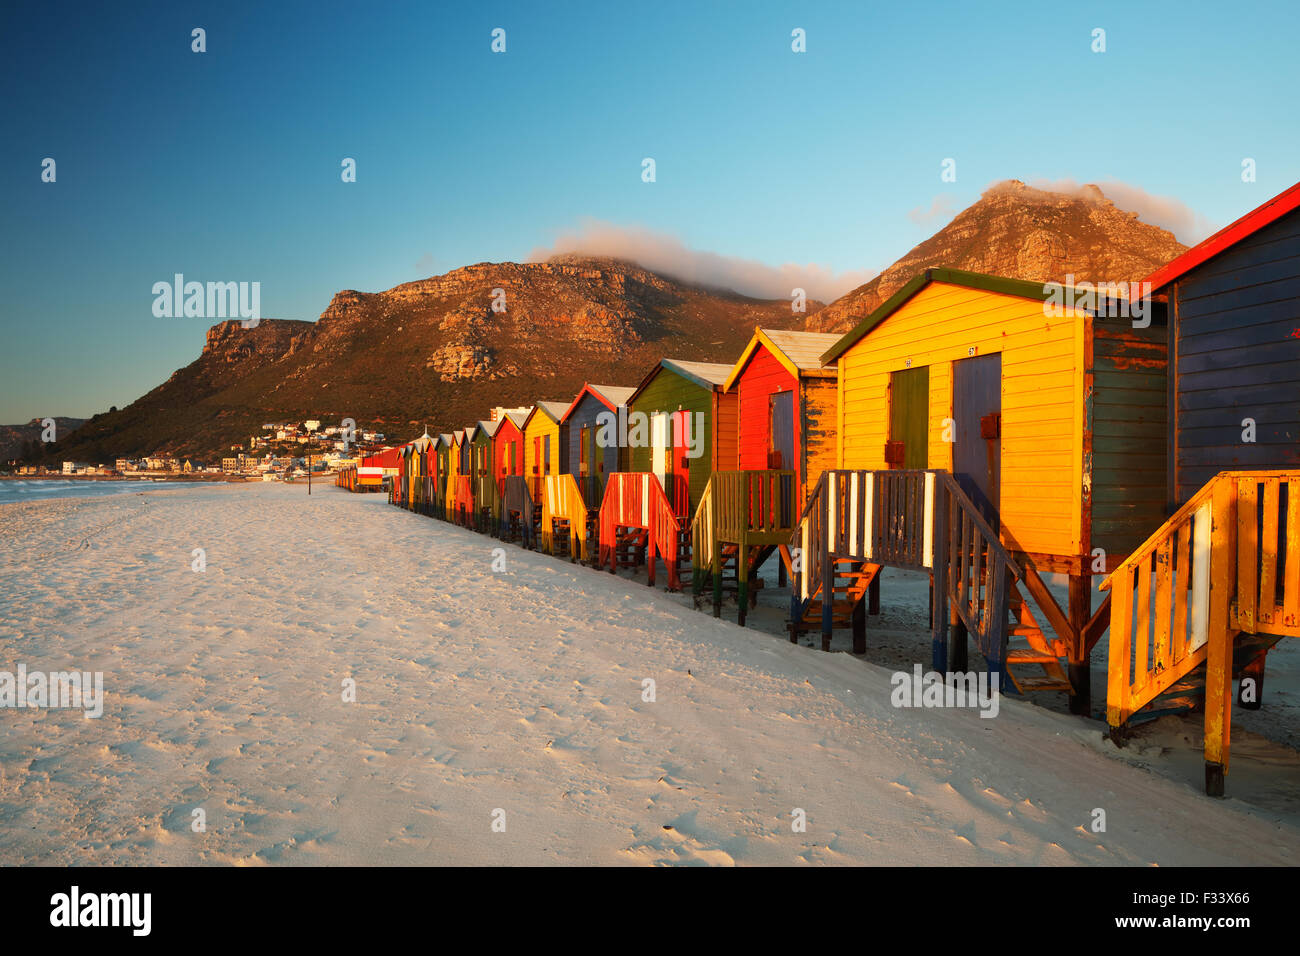 beach huts on Muizenberg Beach, Cape Town, South Africa - Stock Image